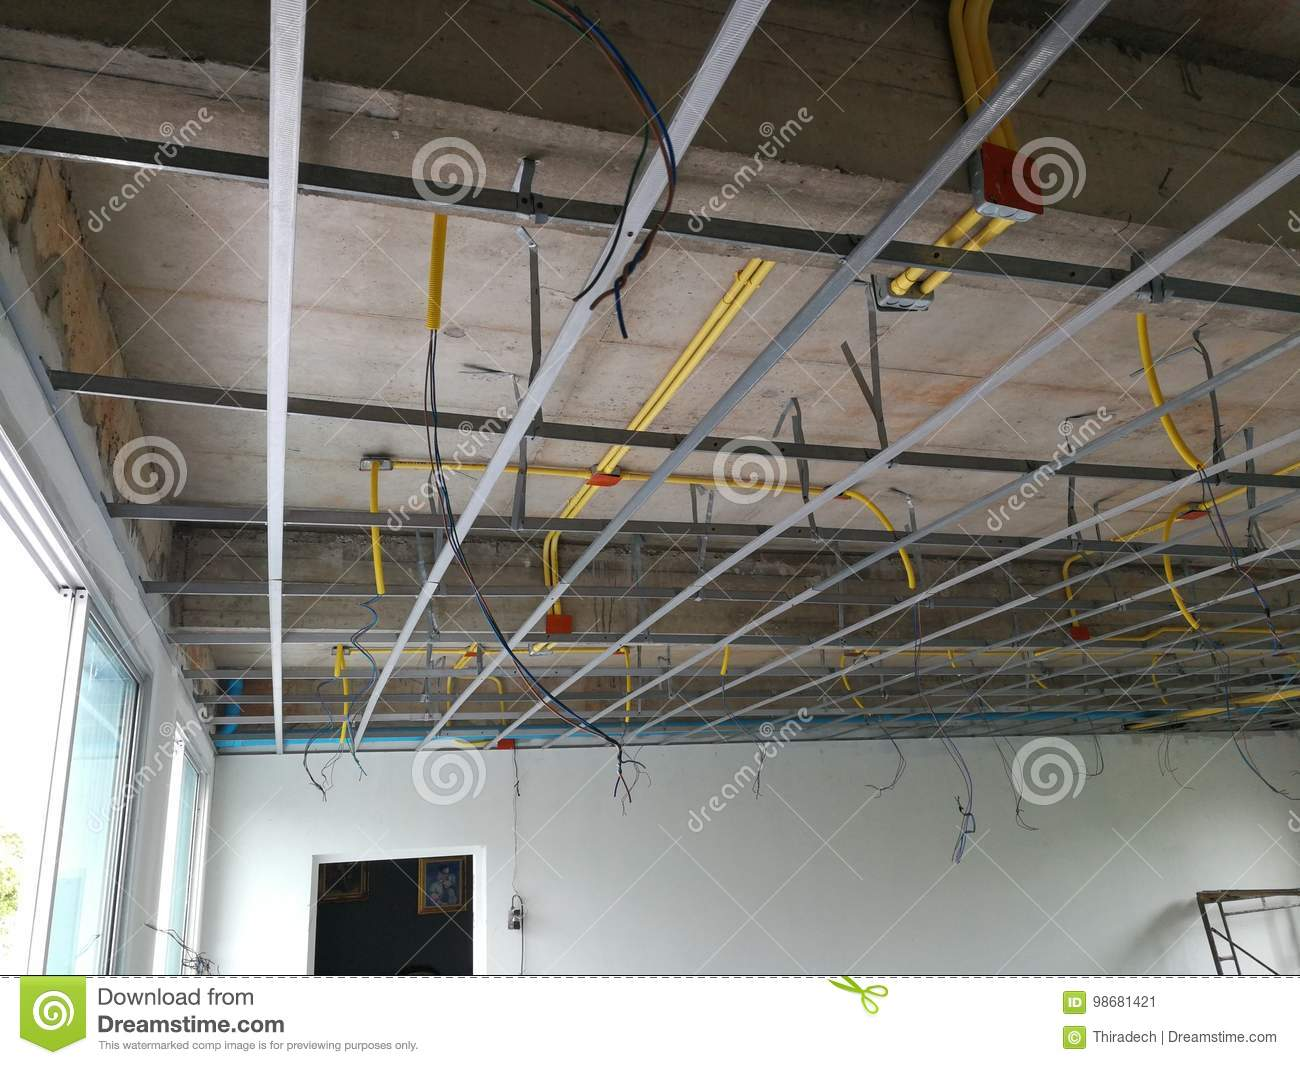 Phenomenal Install The Ceiling Frame And Wiring Pipe Stock Image Image Of Wiring Digital Resources Sapebecompassionincorg